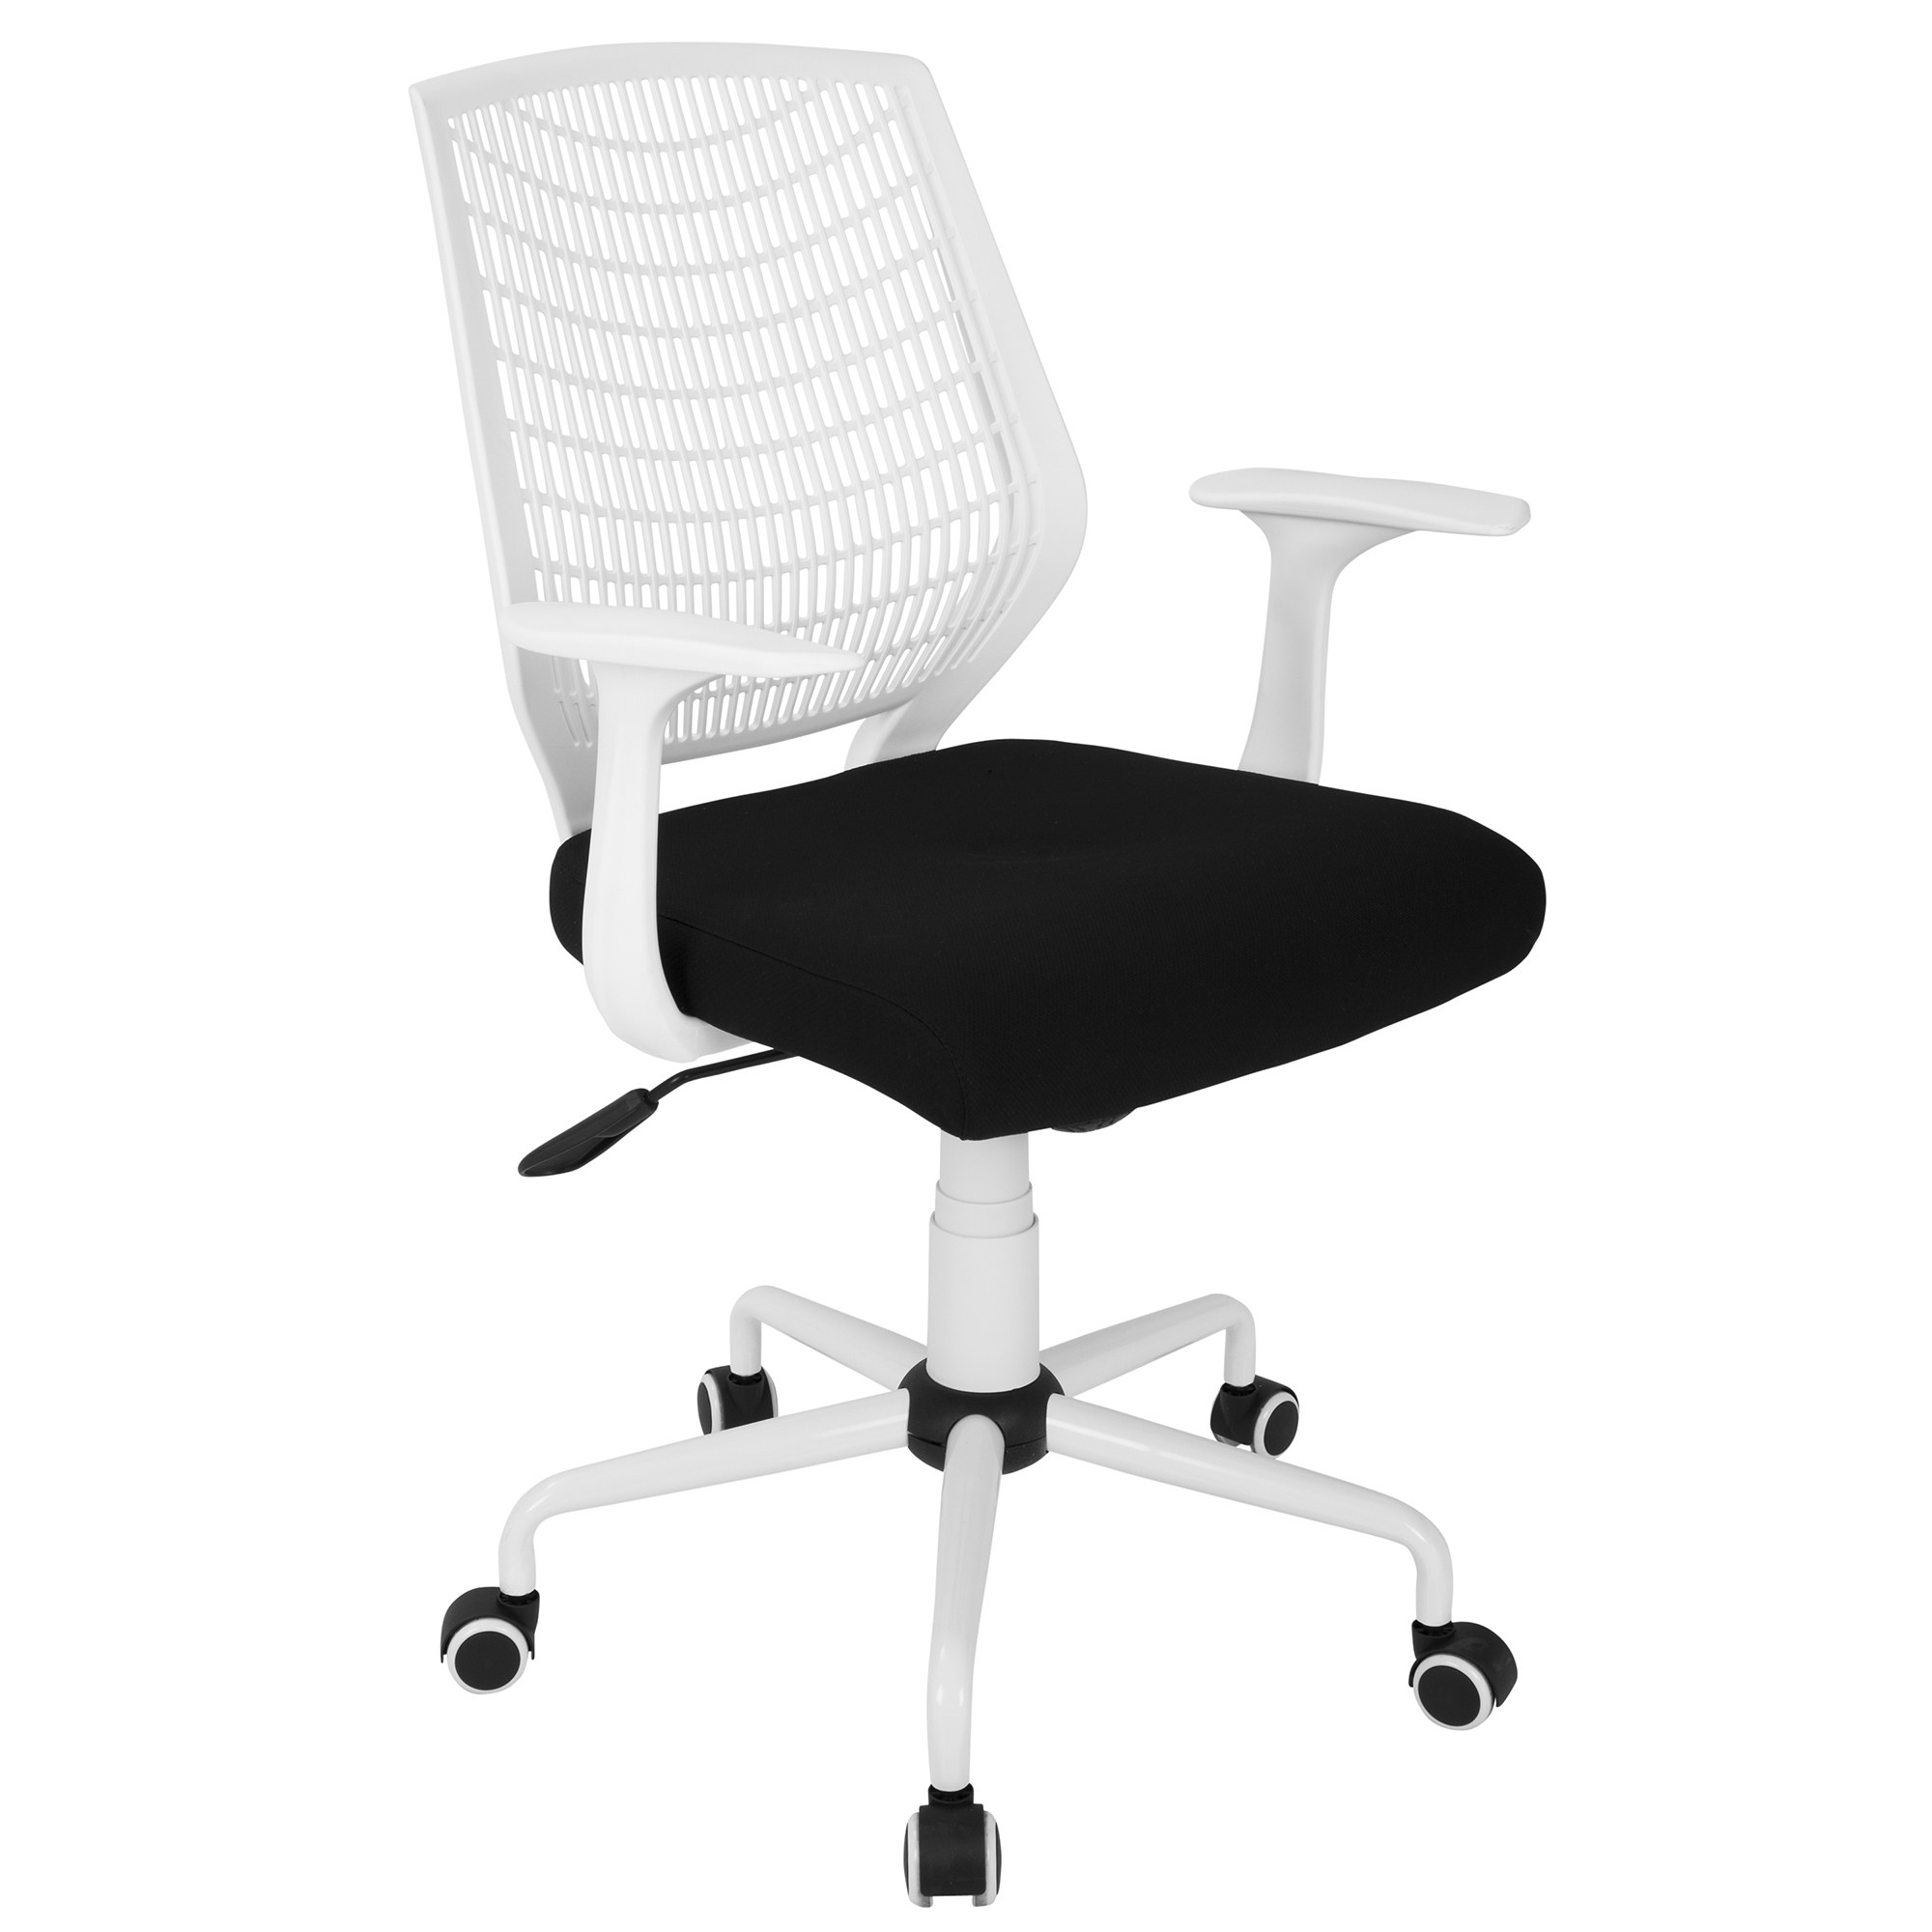 White And Black Office Chair Network Office Chair In White Black By Lumisource